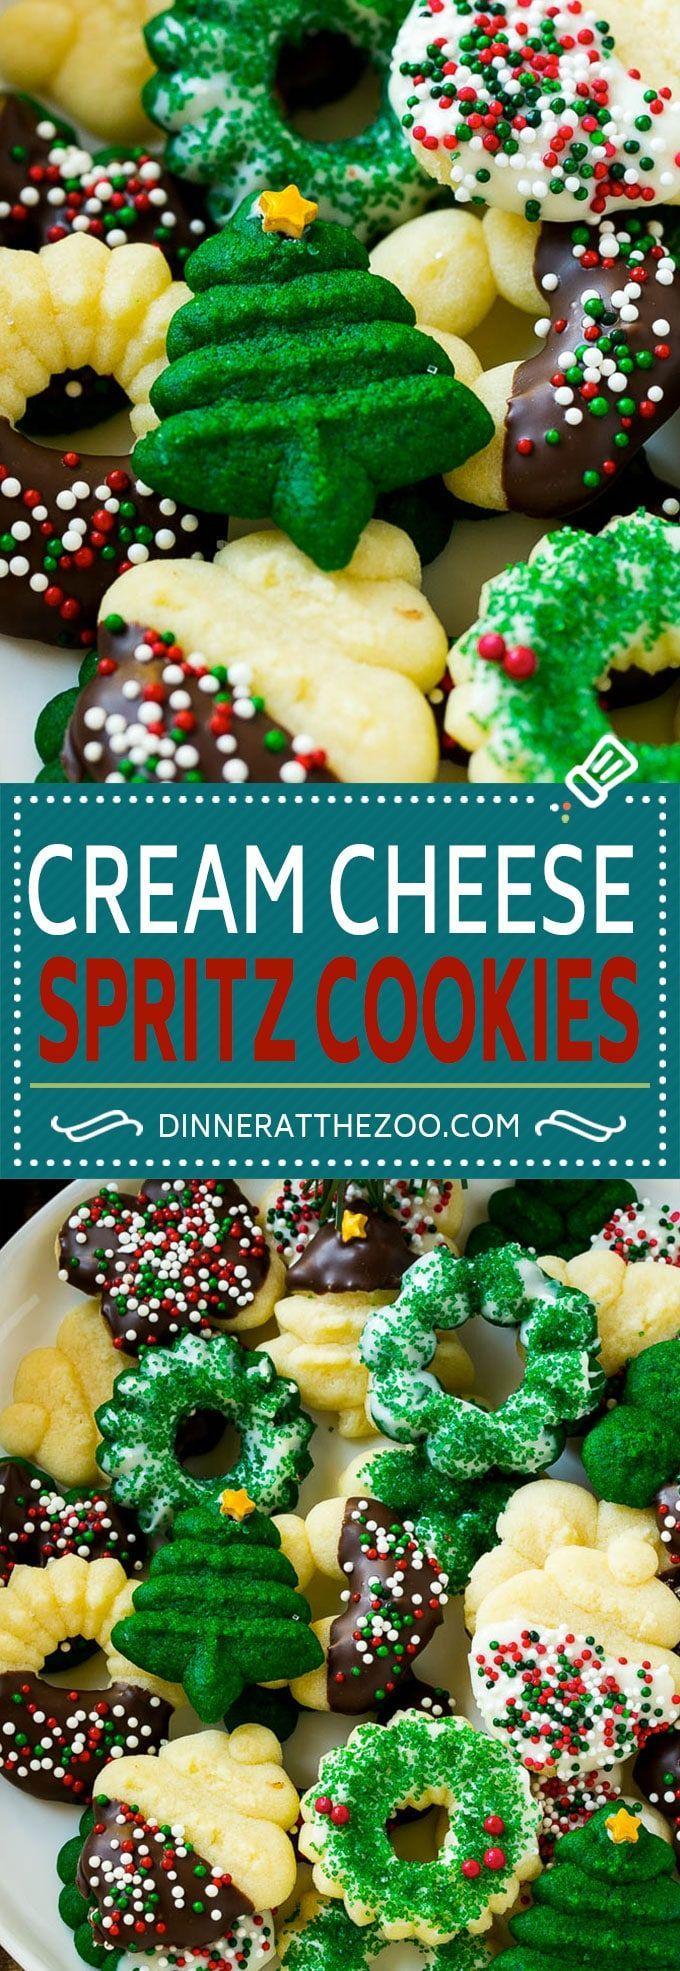 Cream Cheese Spritz Cookie Recipe | Butter Spritz Cookies | Best Spritz Cookies | Holiday Cookies | Christmas Cookies